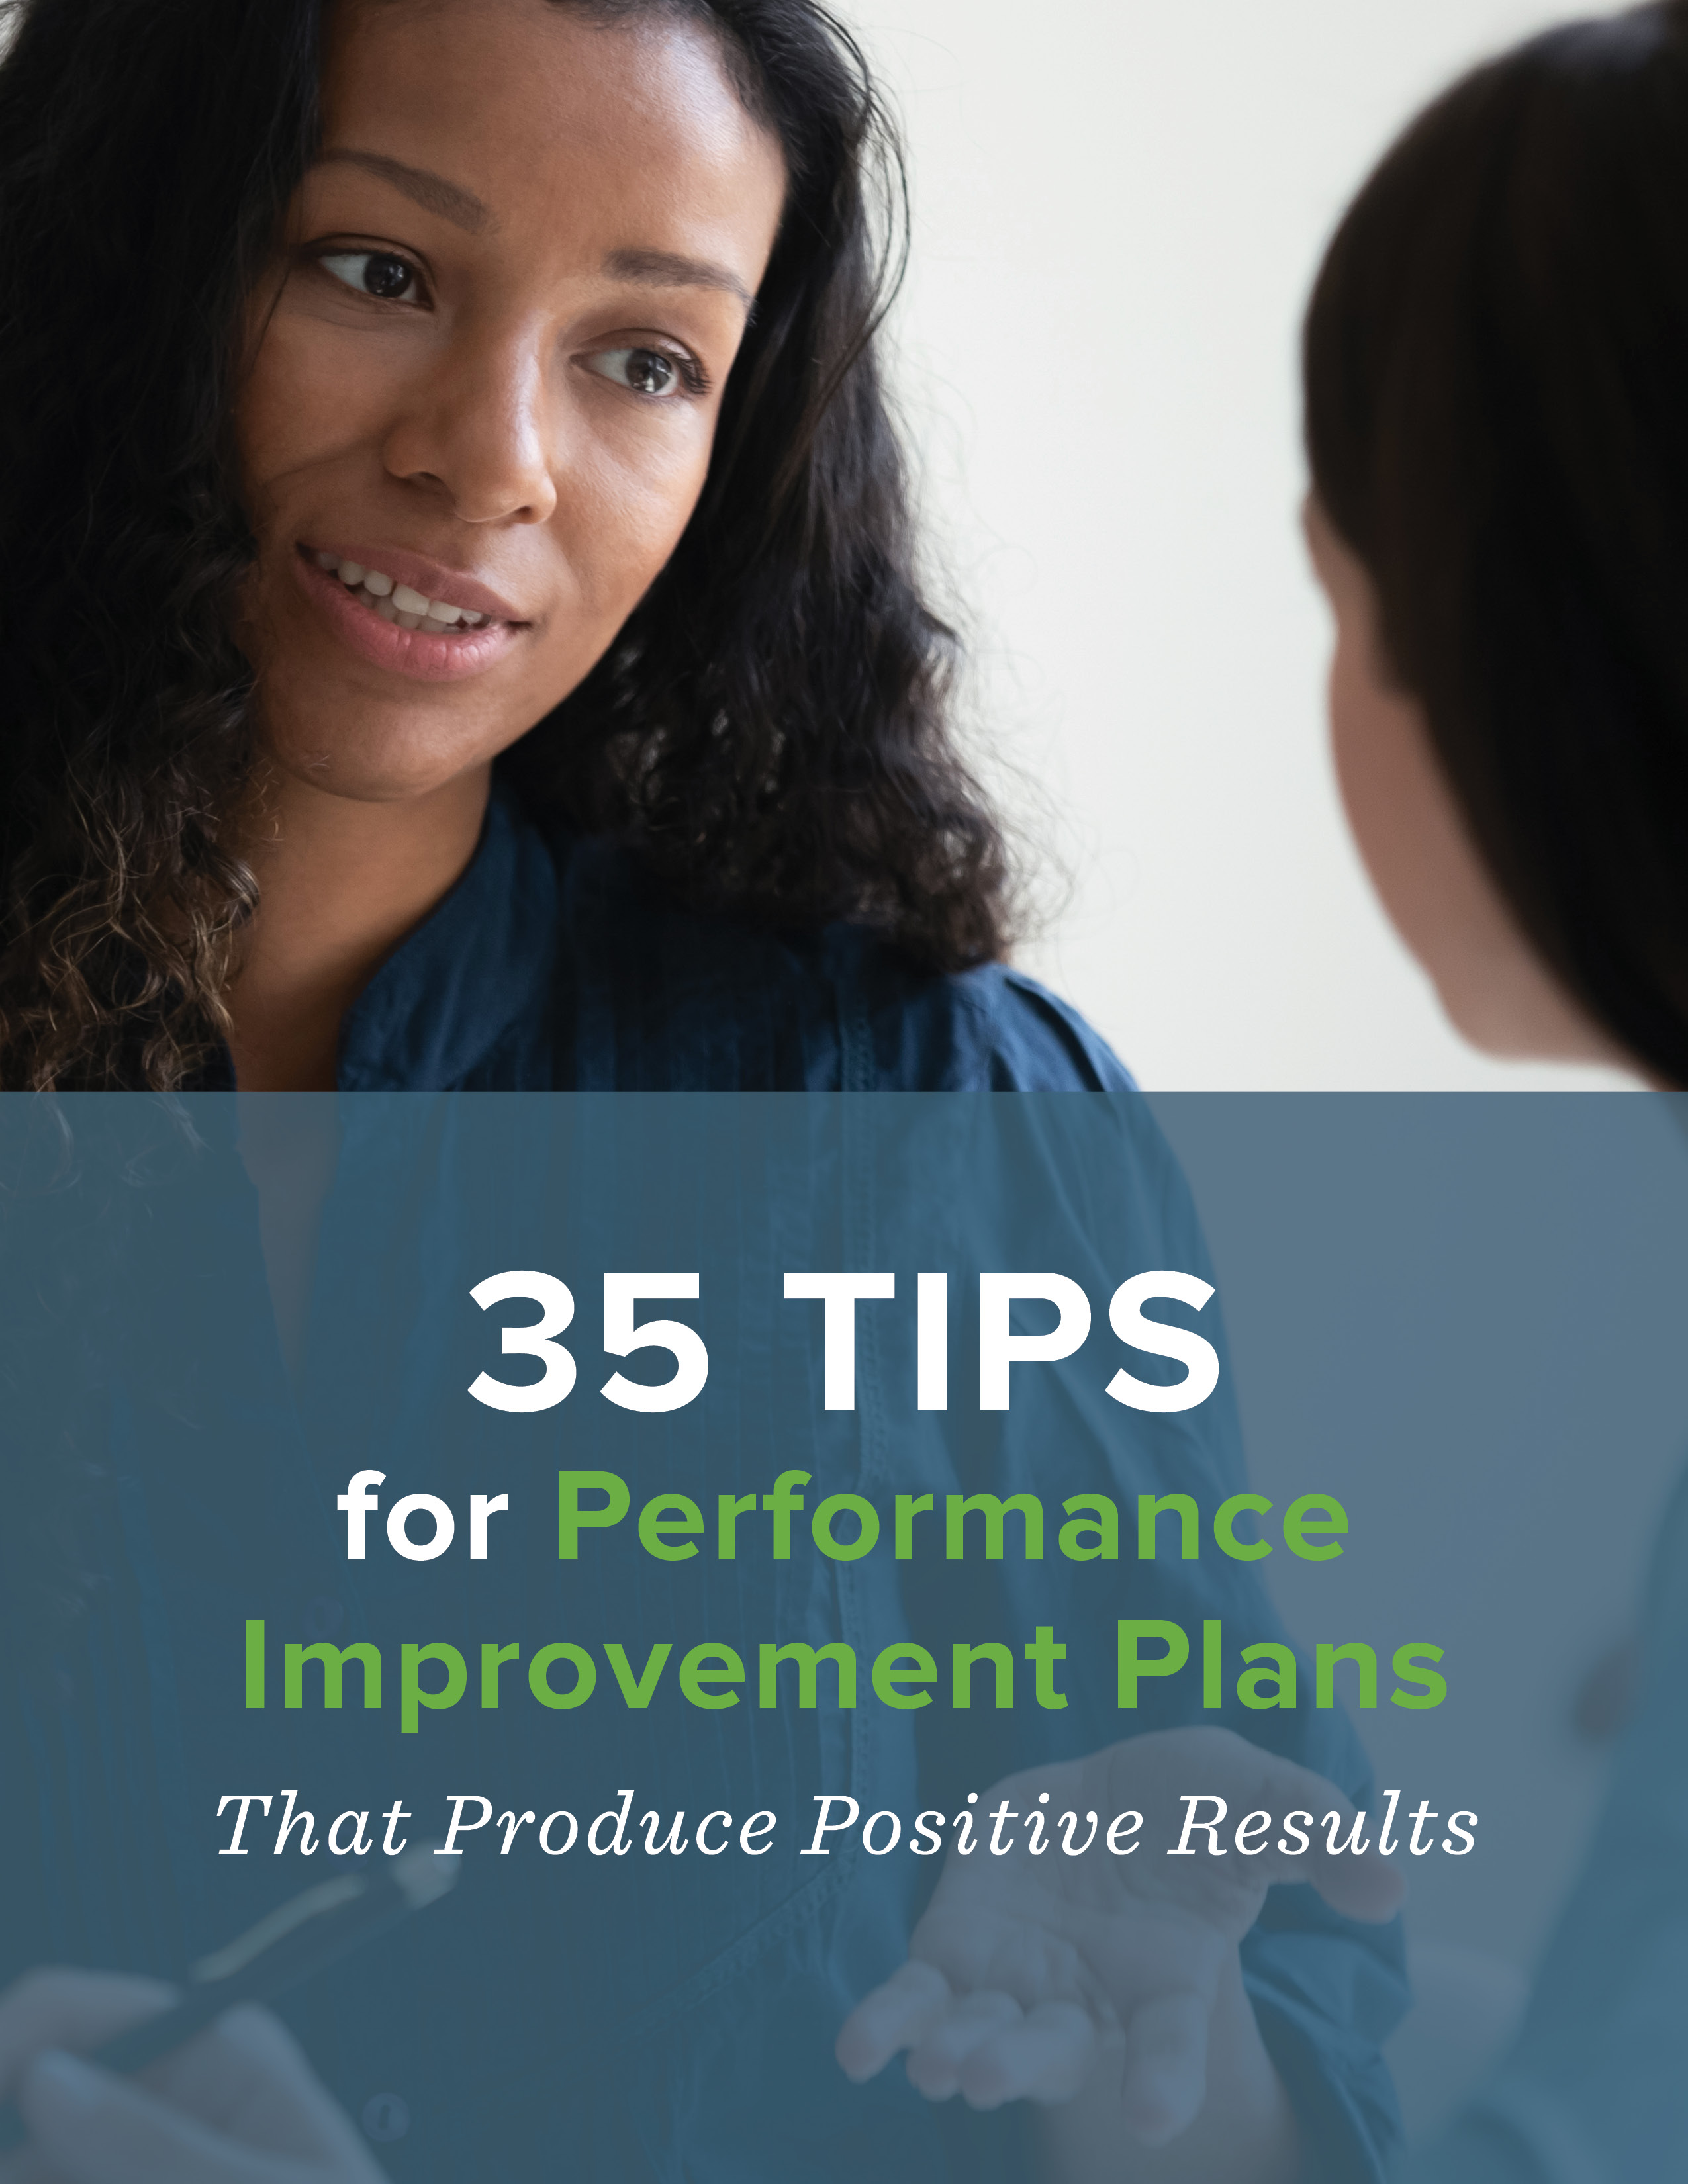 35 Tips for Performance Improvement Plans